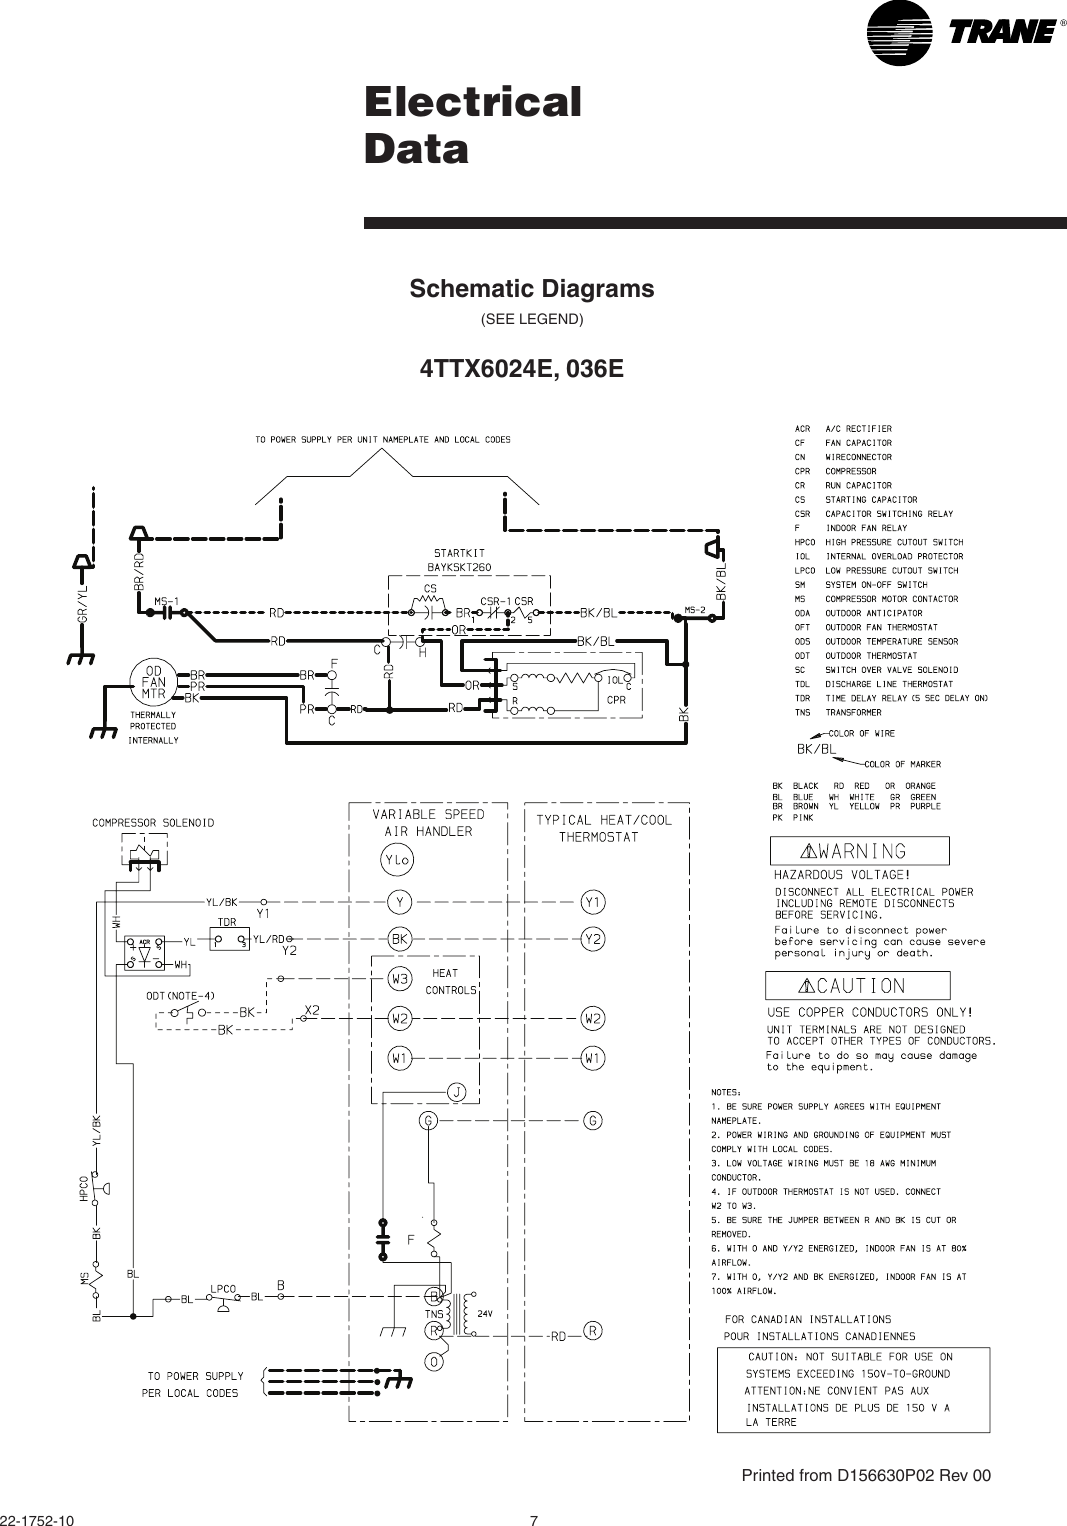 Garland Mco Es 10 Wiring Diagram also Trane Cooling Ambient Contro Wiring Schematics besides Trane Wiring Diagrams as well Trane Weathertron Thermostat Wiring Diagram likewise Trane4TEE3and2TEE3diagram. on trane xe 900 wiring diagram